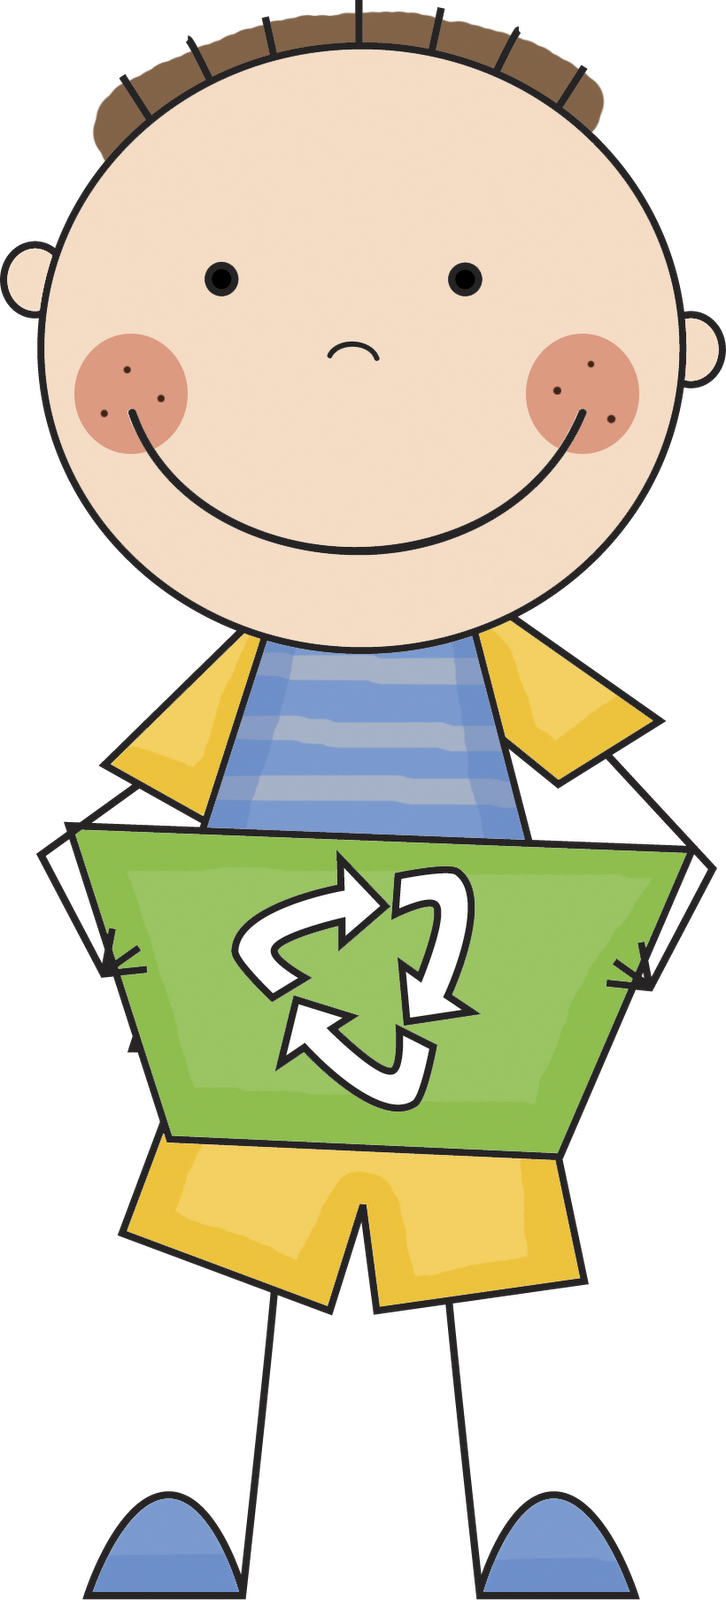 Btak ogc png behavior. Excited clipart cheerful